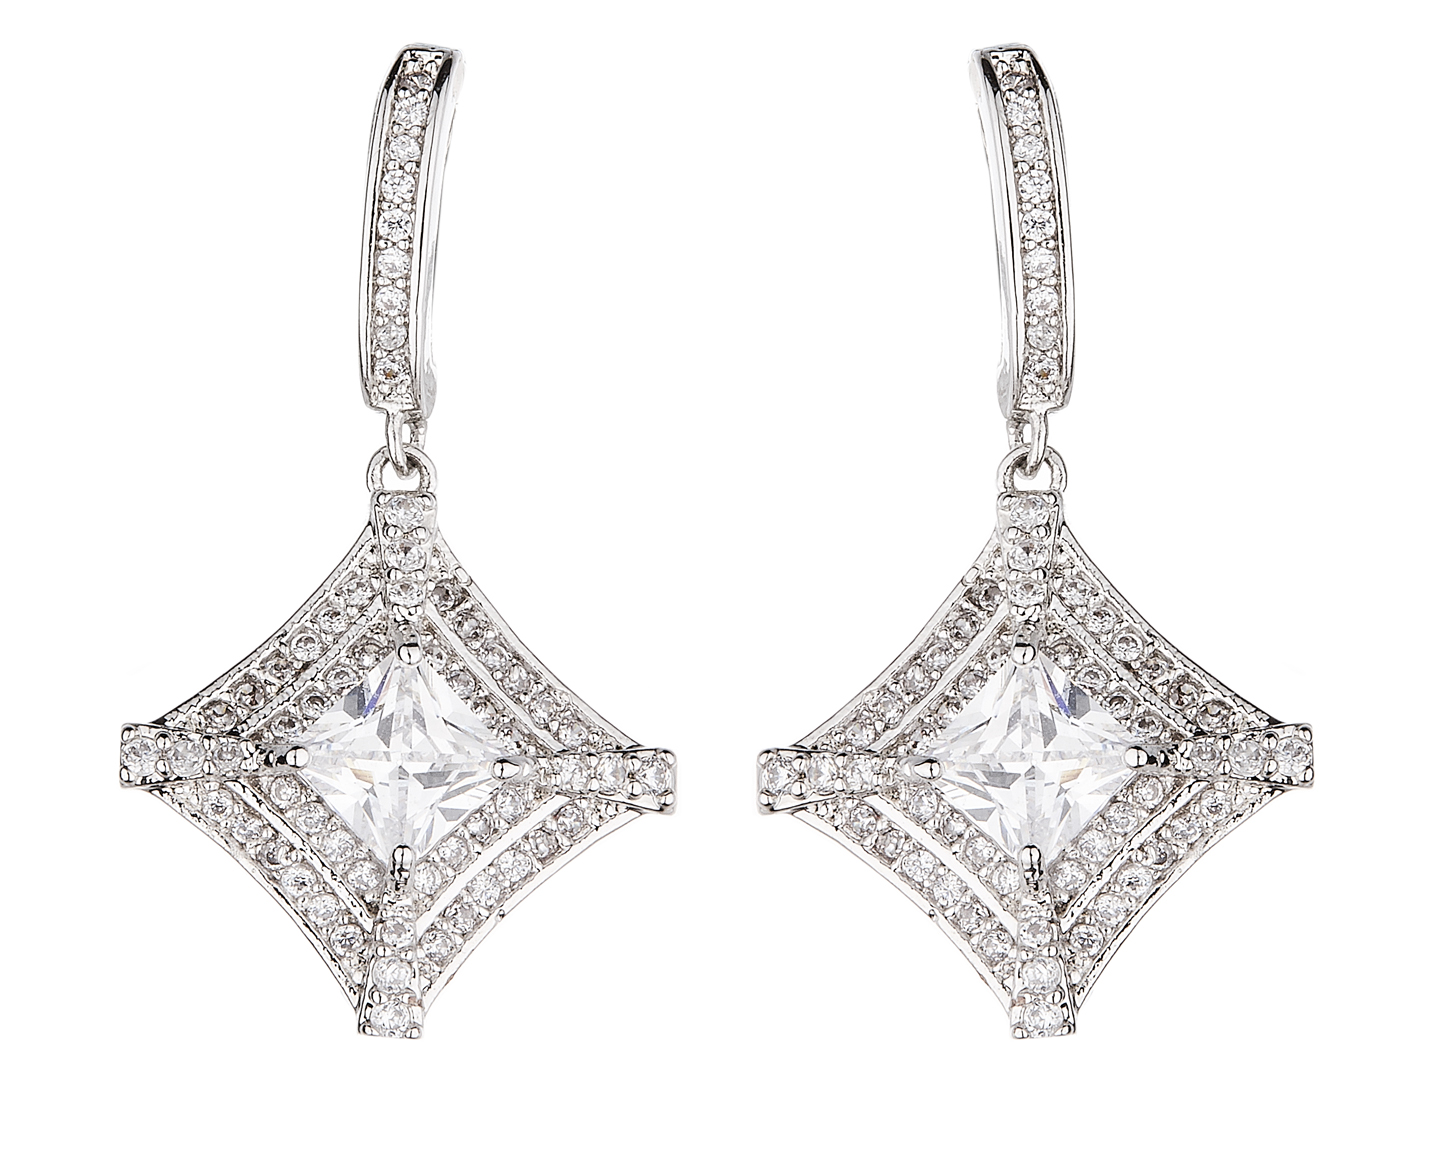 Clip On Earrings - Nariko - silver luxury drop earring with cubic zirconia crystals and stones